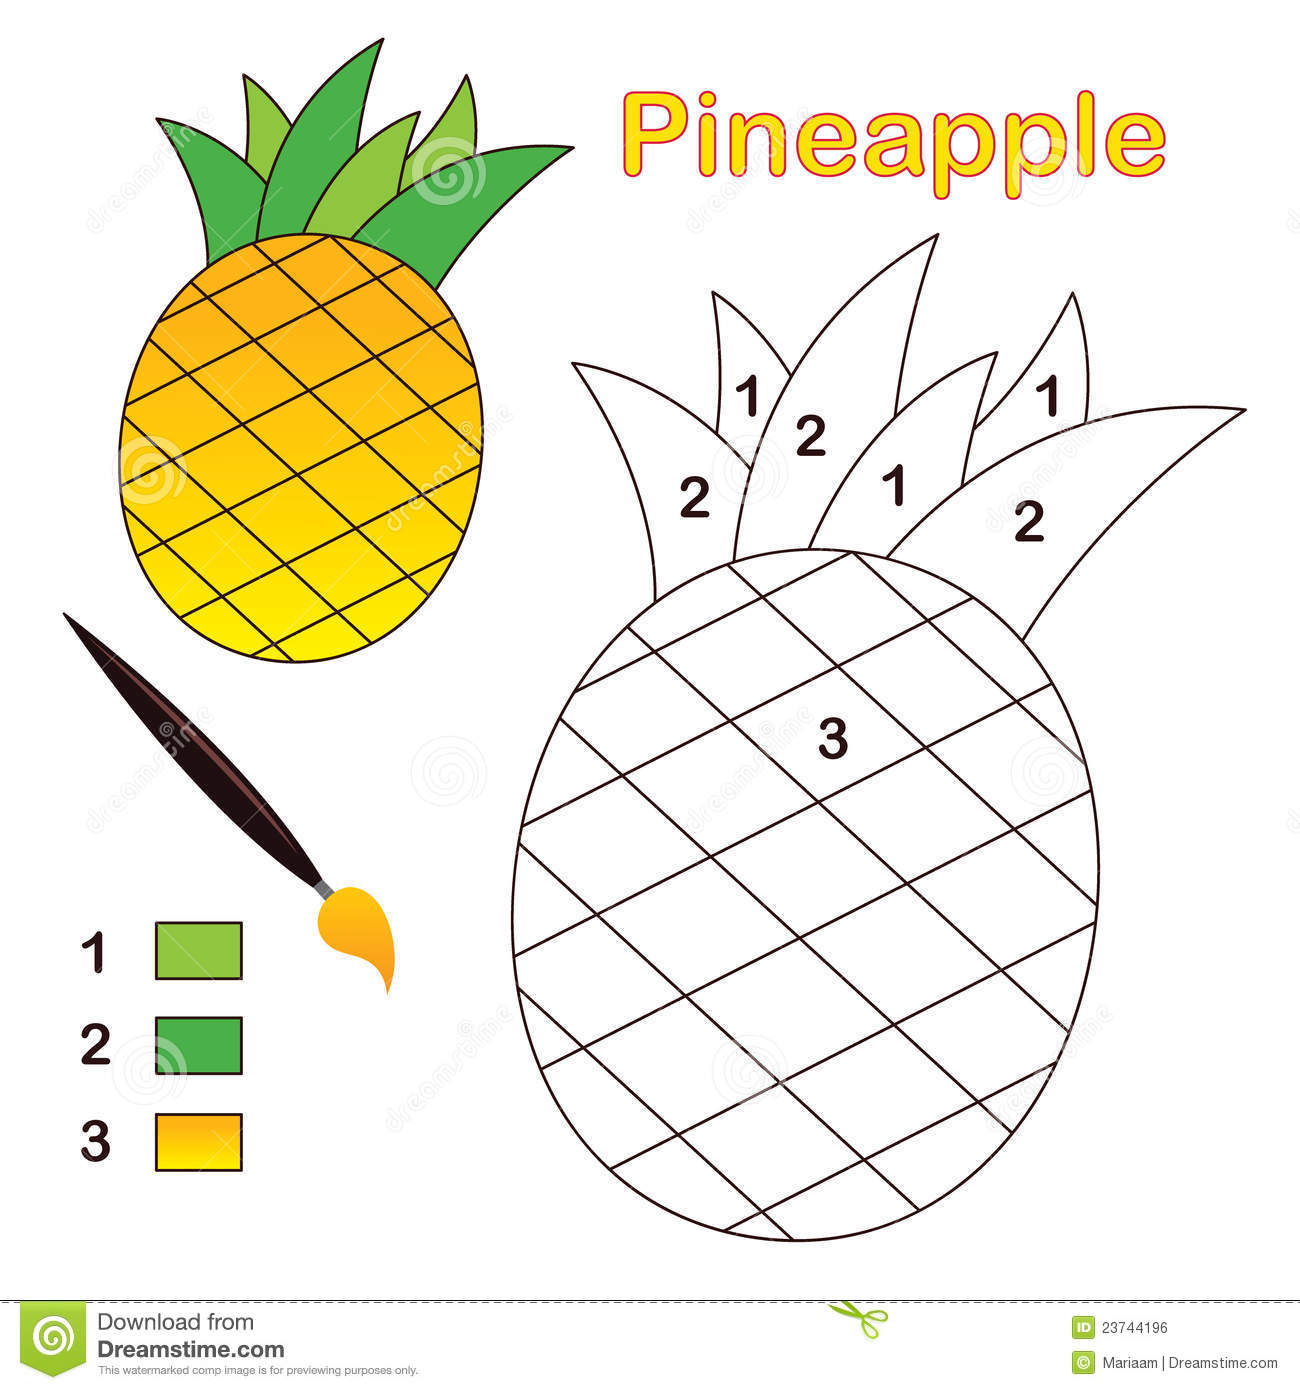 Uncategorized Pineapple Picture To Color color by number pineapple stock vector image of learning 23744196 royalty free photo download pineapple